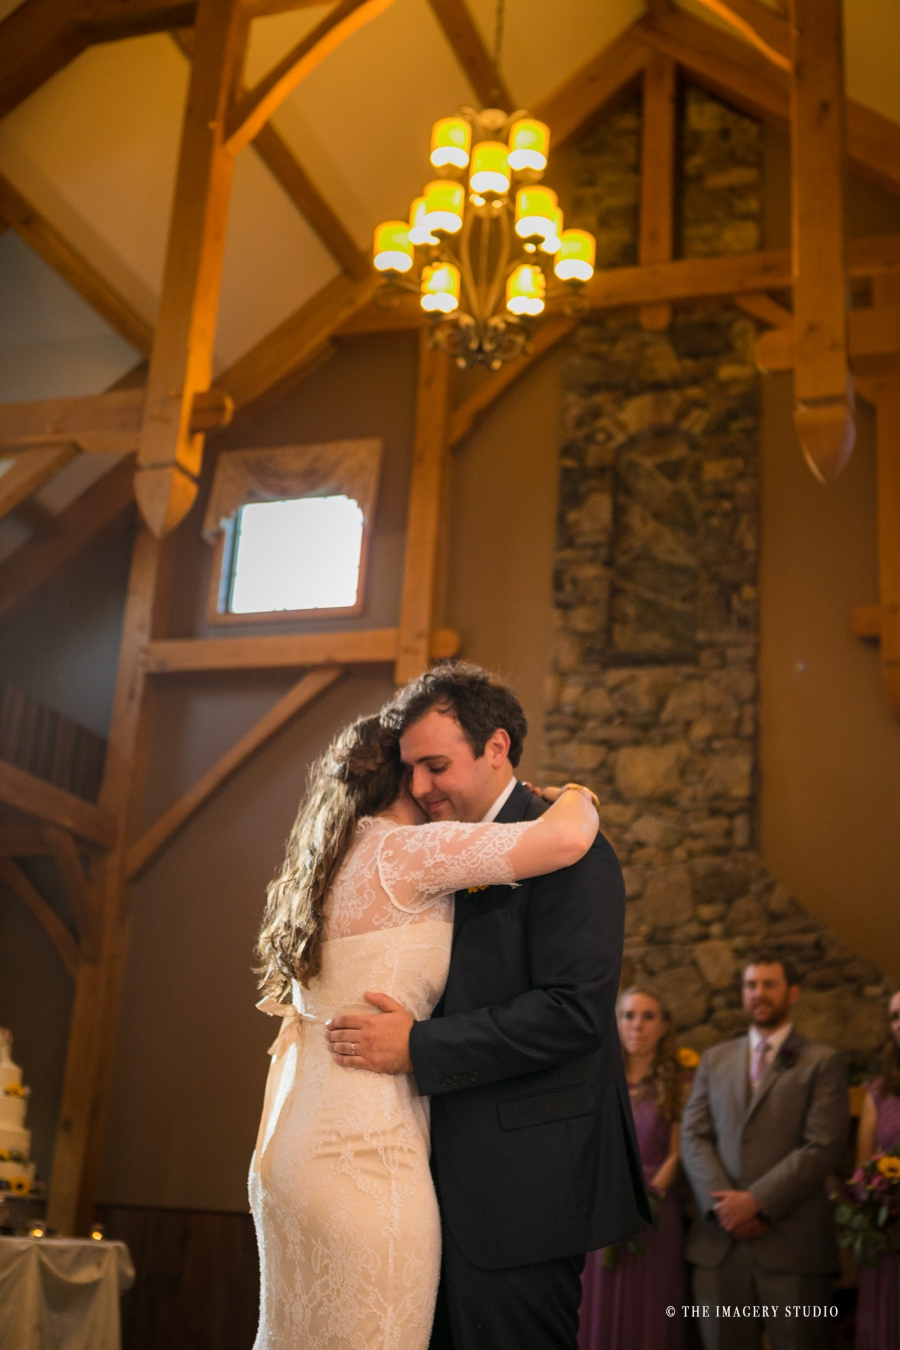 harrington farm weddings, bride and groom first dance in front of the fireplace